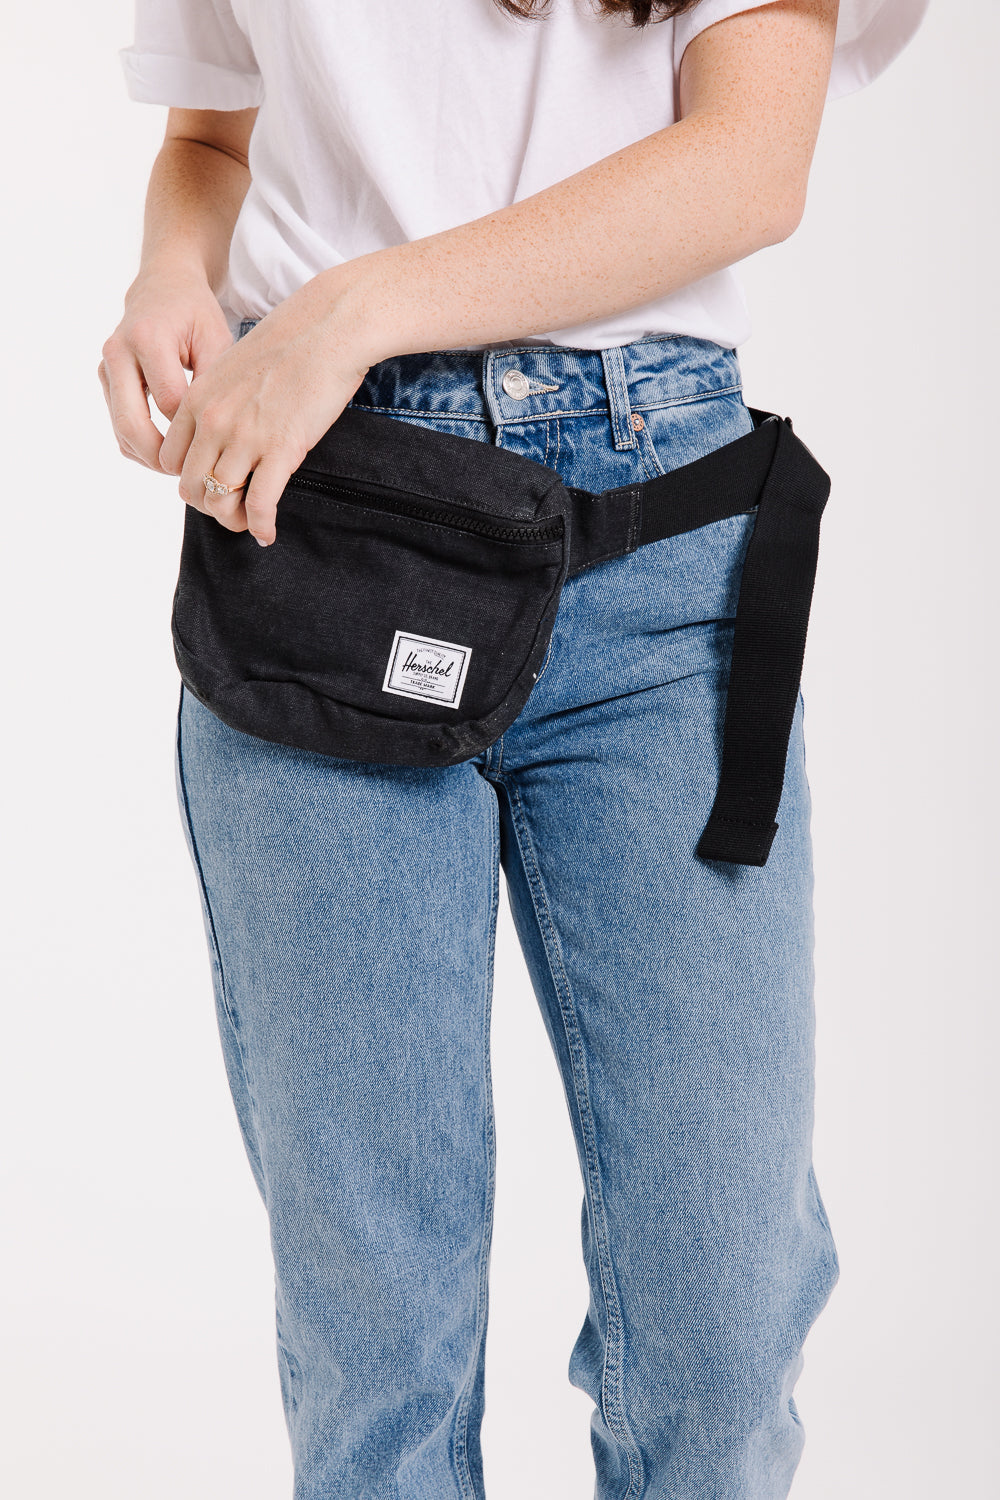 Herschel: Fifteen Hip Pack in Canvas Black